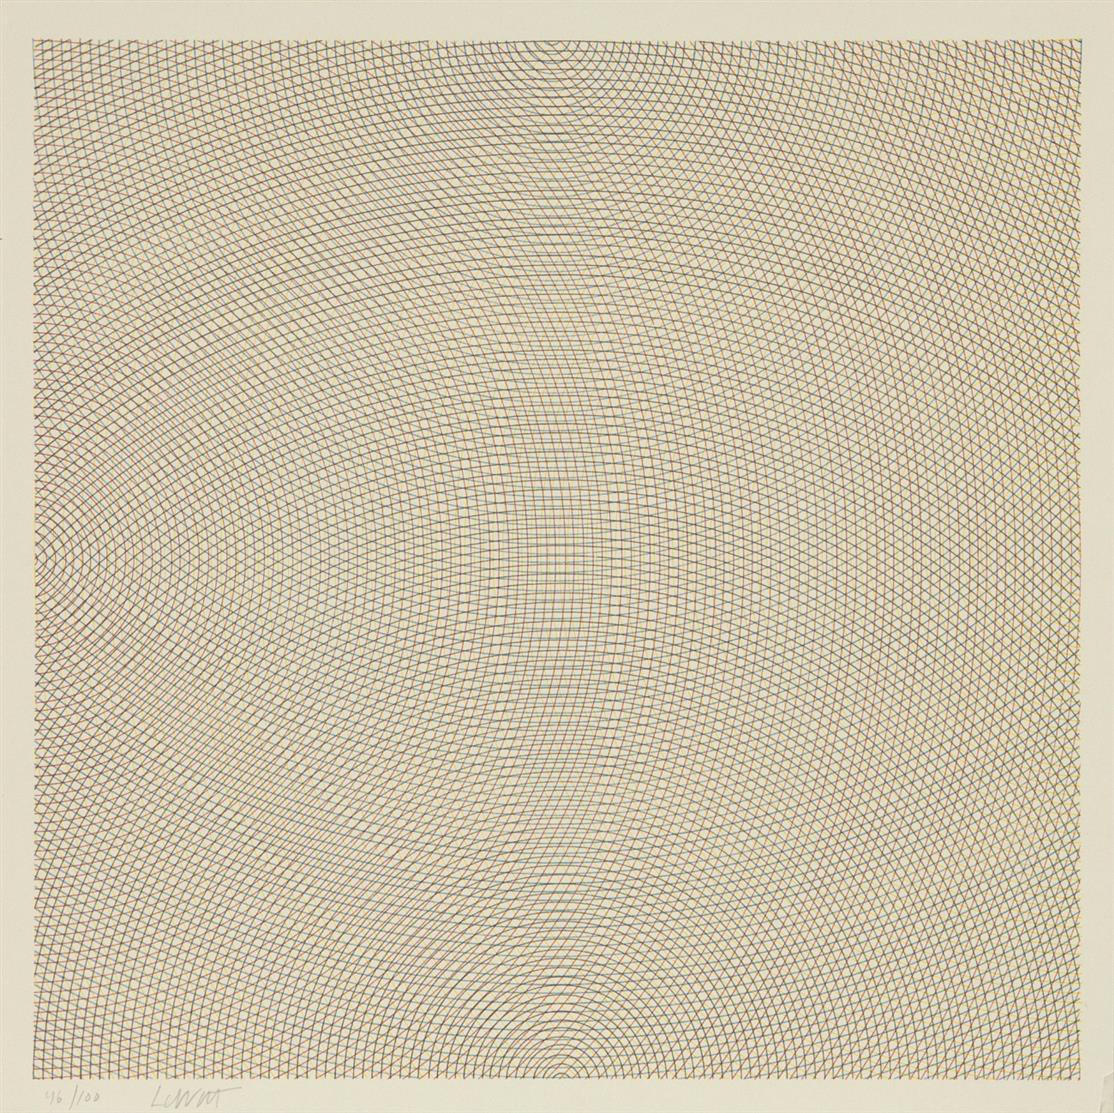 Sol Lewitt. Arcs from corners and sides (Set of two). 1972. 2 Blatt Farbserigraphien. Je signiert. Ex. 46/100.